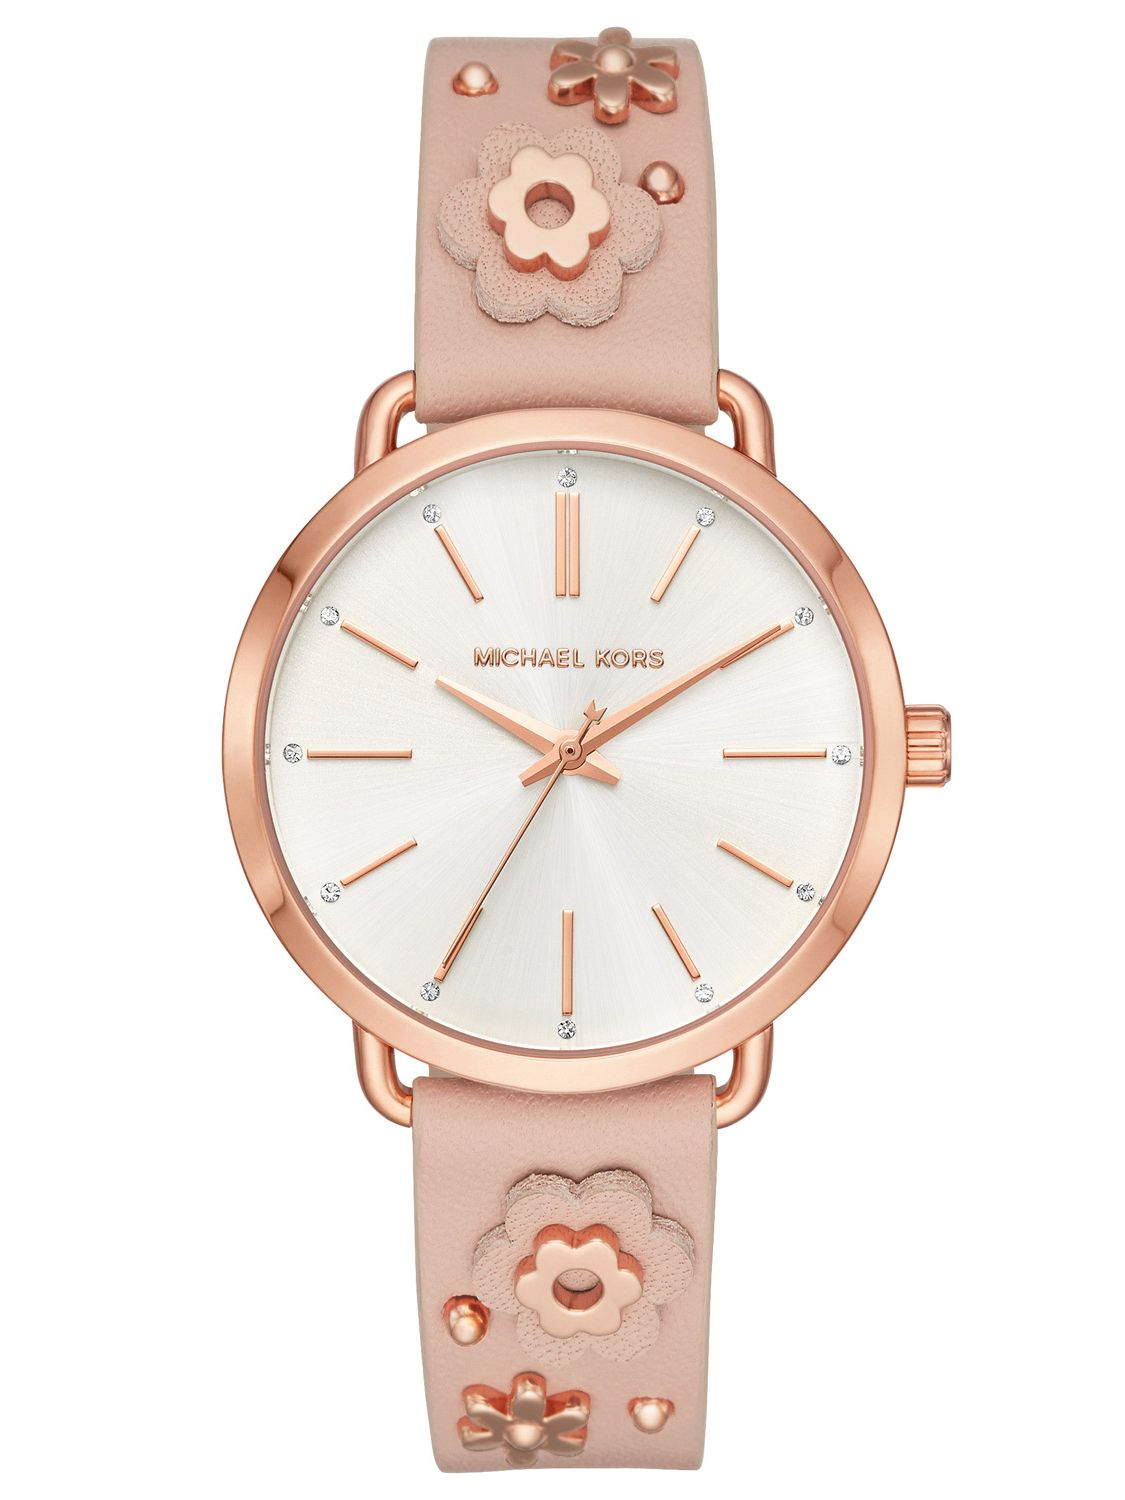 777a3f5e4b88 MICHAEL KORS Ladies Watch Portia Rose MK2738 • uhrcenter